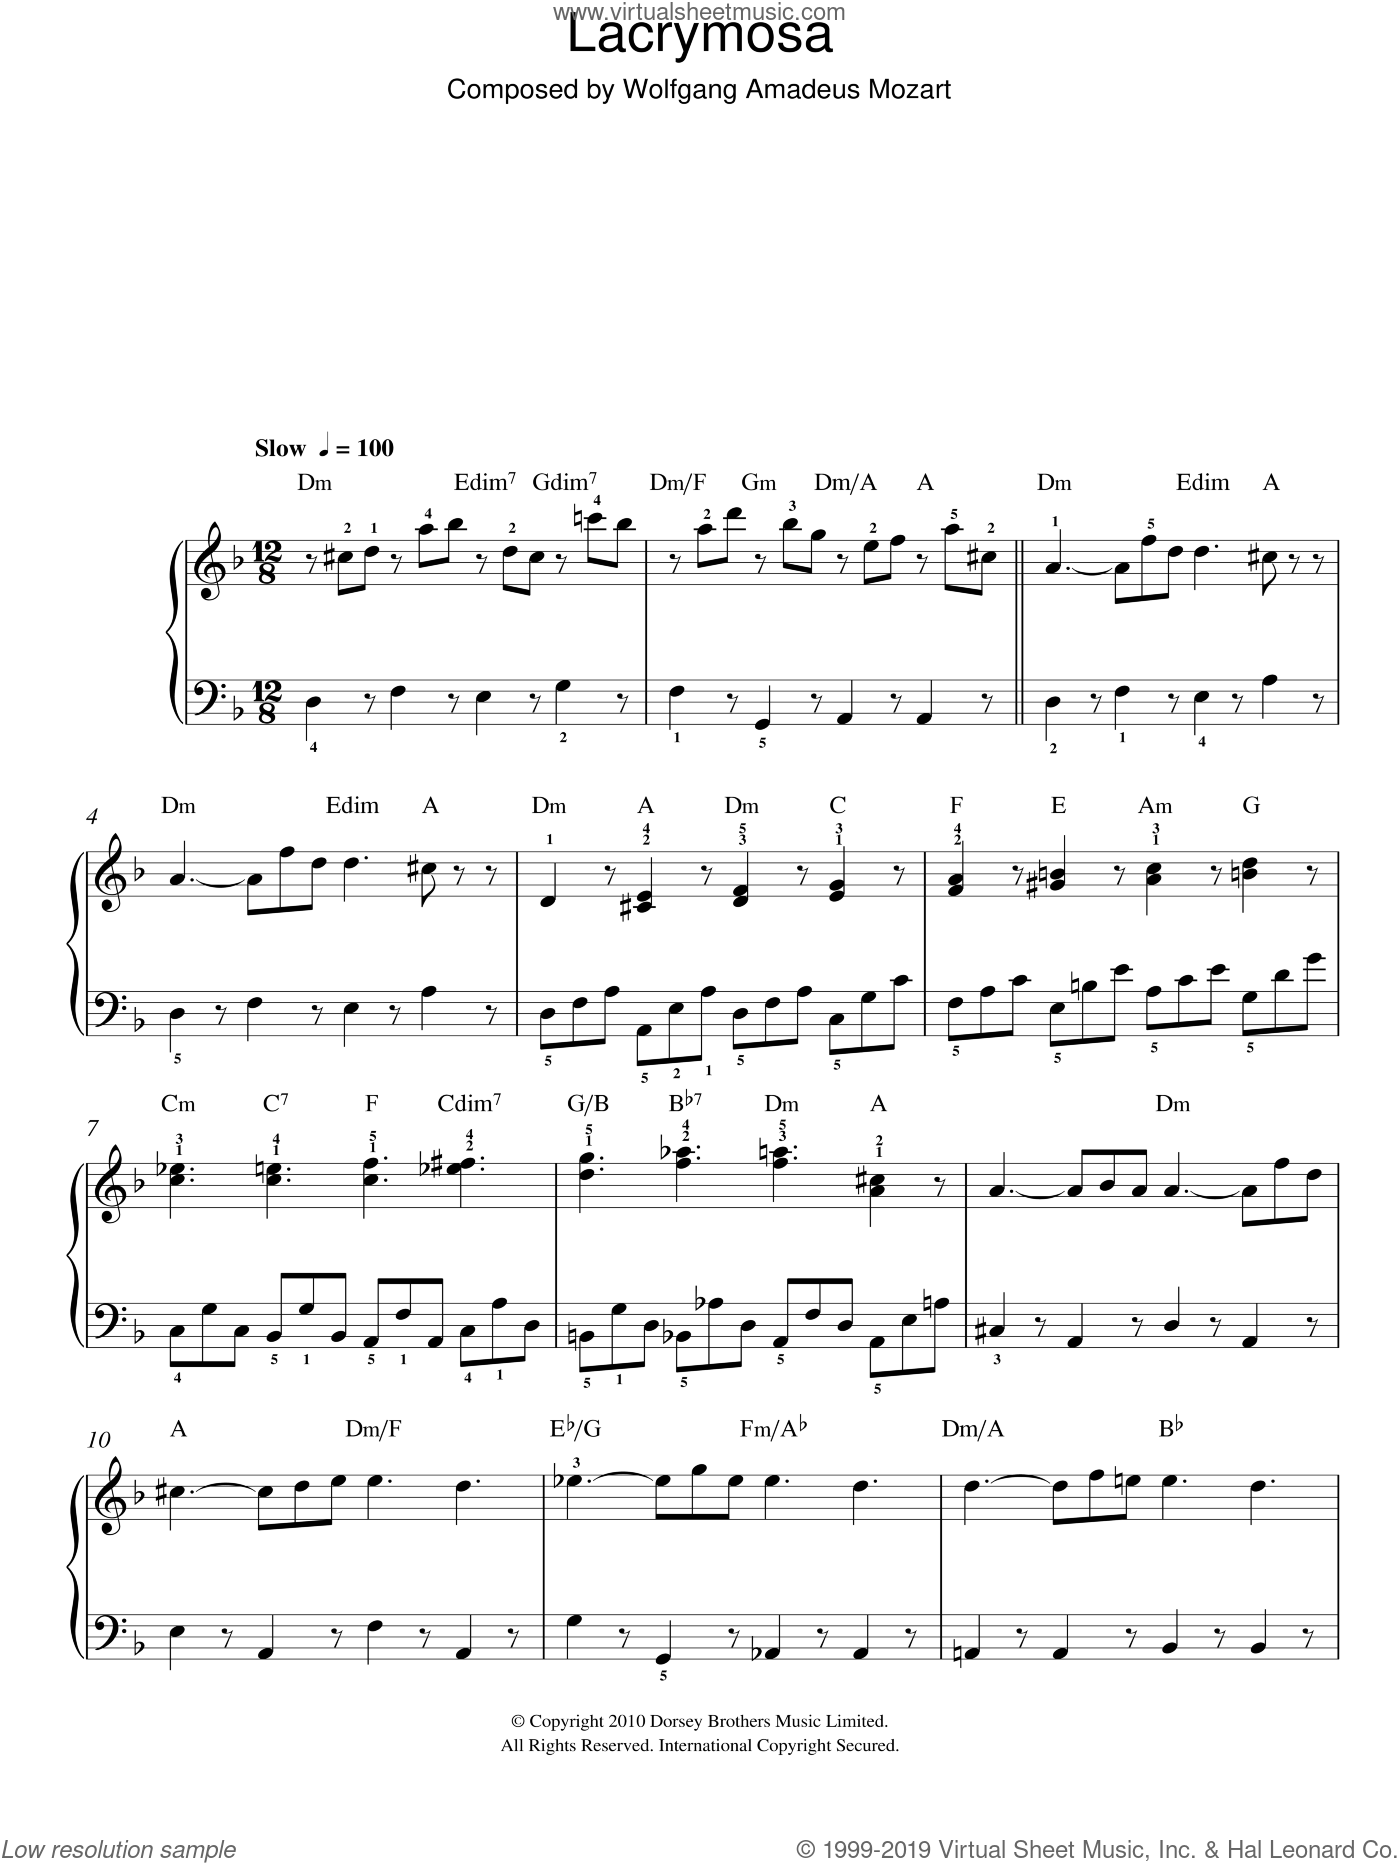 Lacrymosa (from Requiem Mass) sheet music for piano solo by Wolfgang Amadeus Mozart. Score Image Preview.